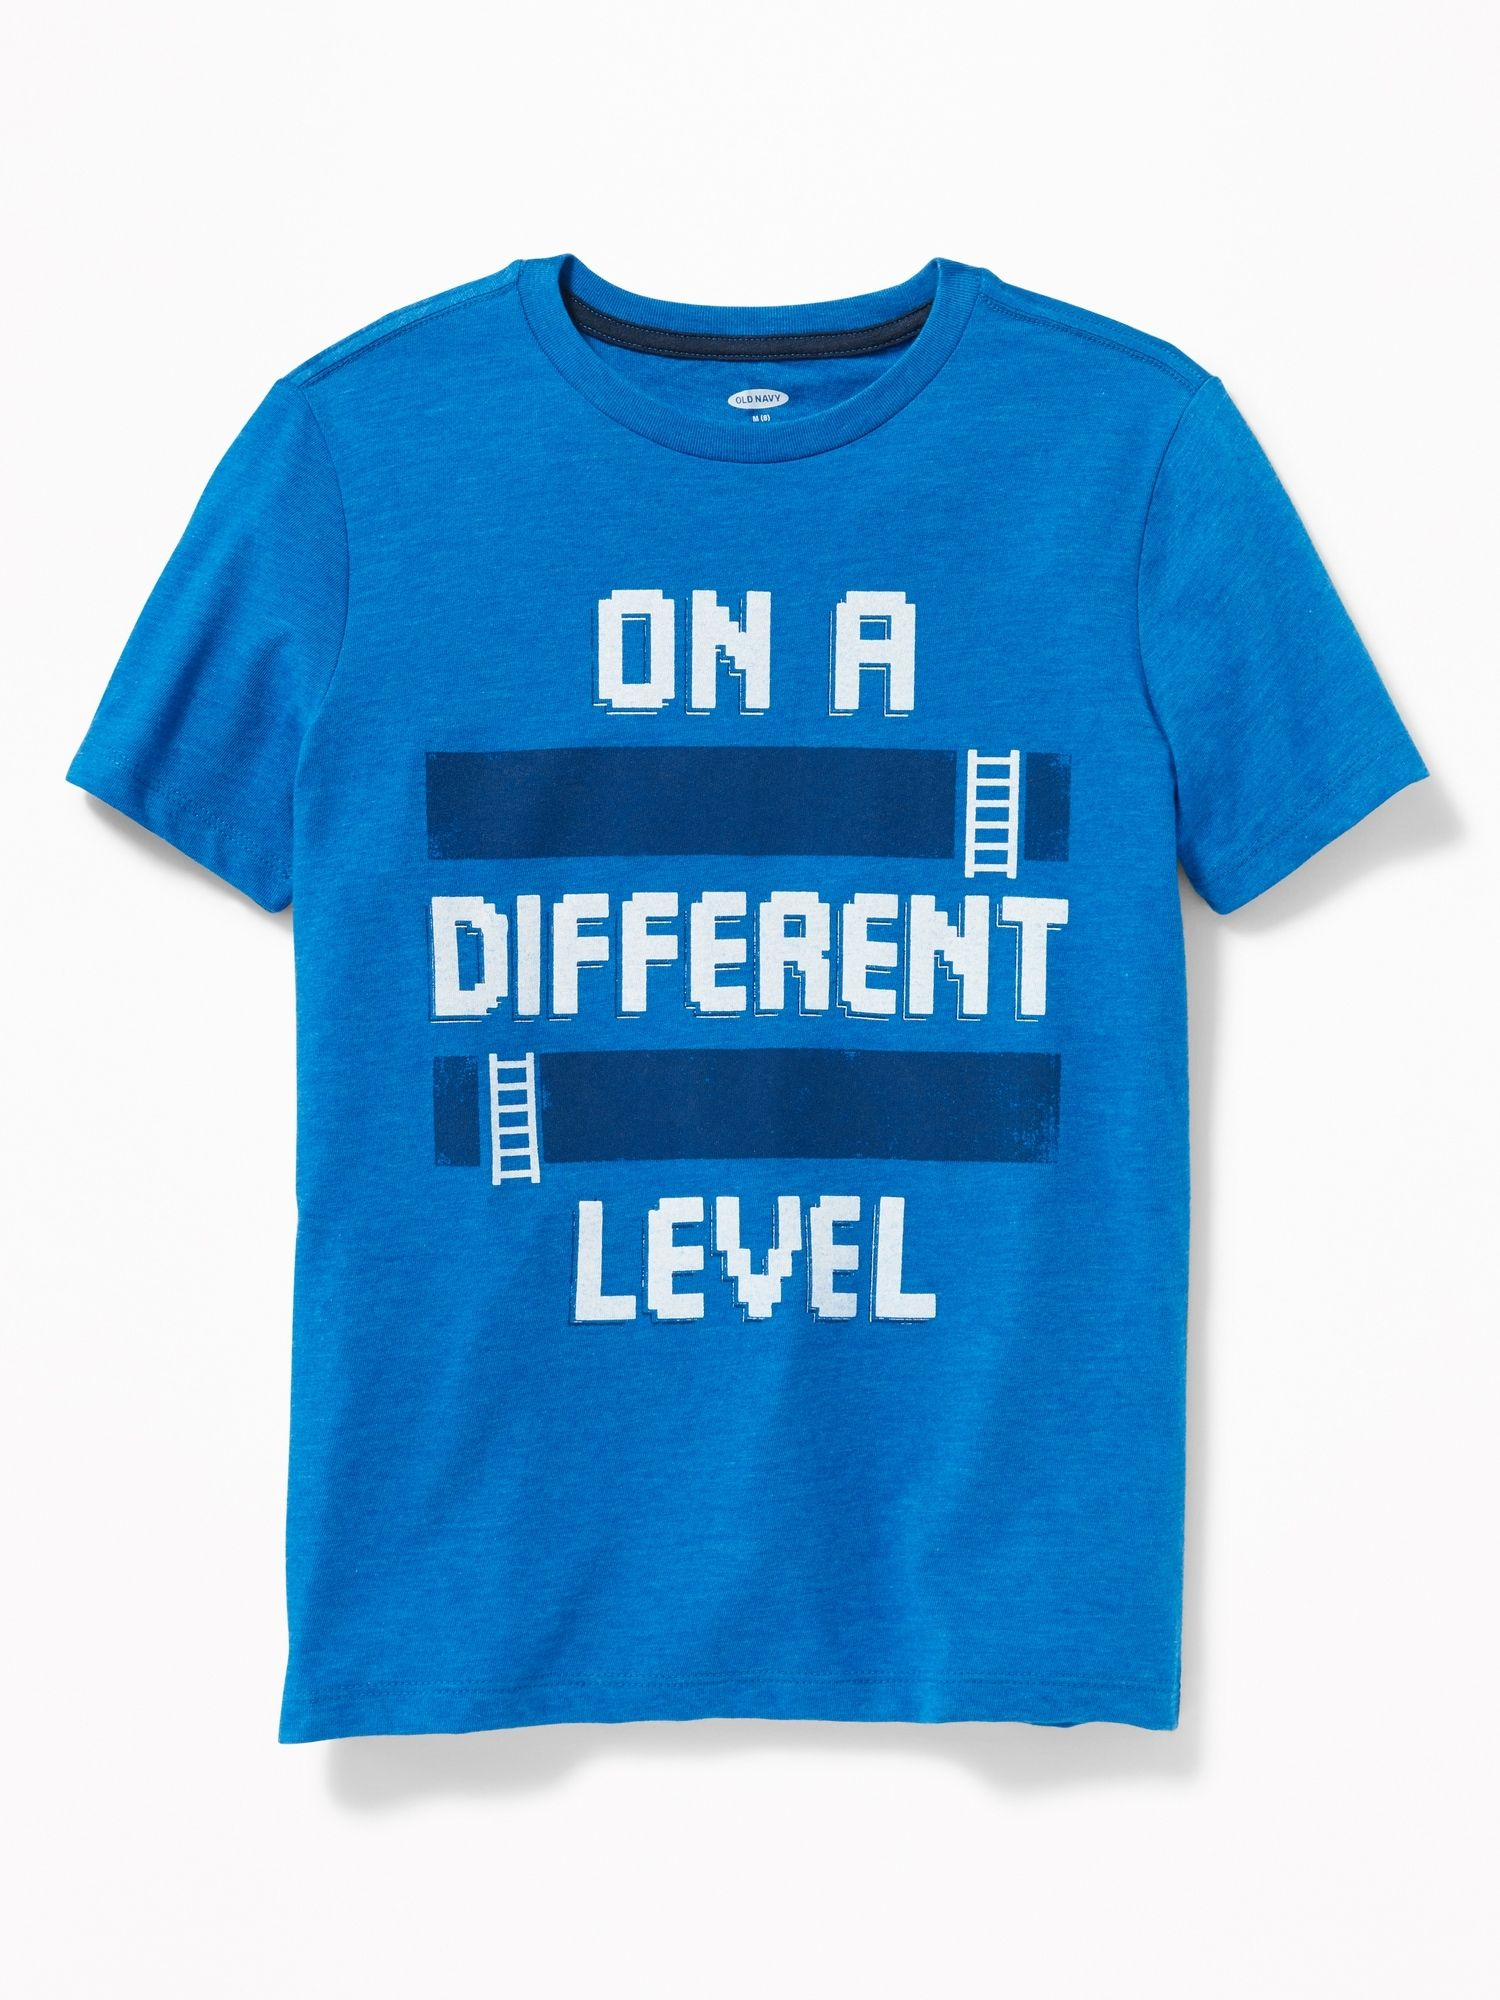 product photo | Cool graphic tees, Boys prints, Graphic tees